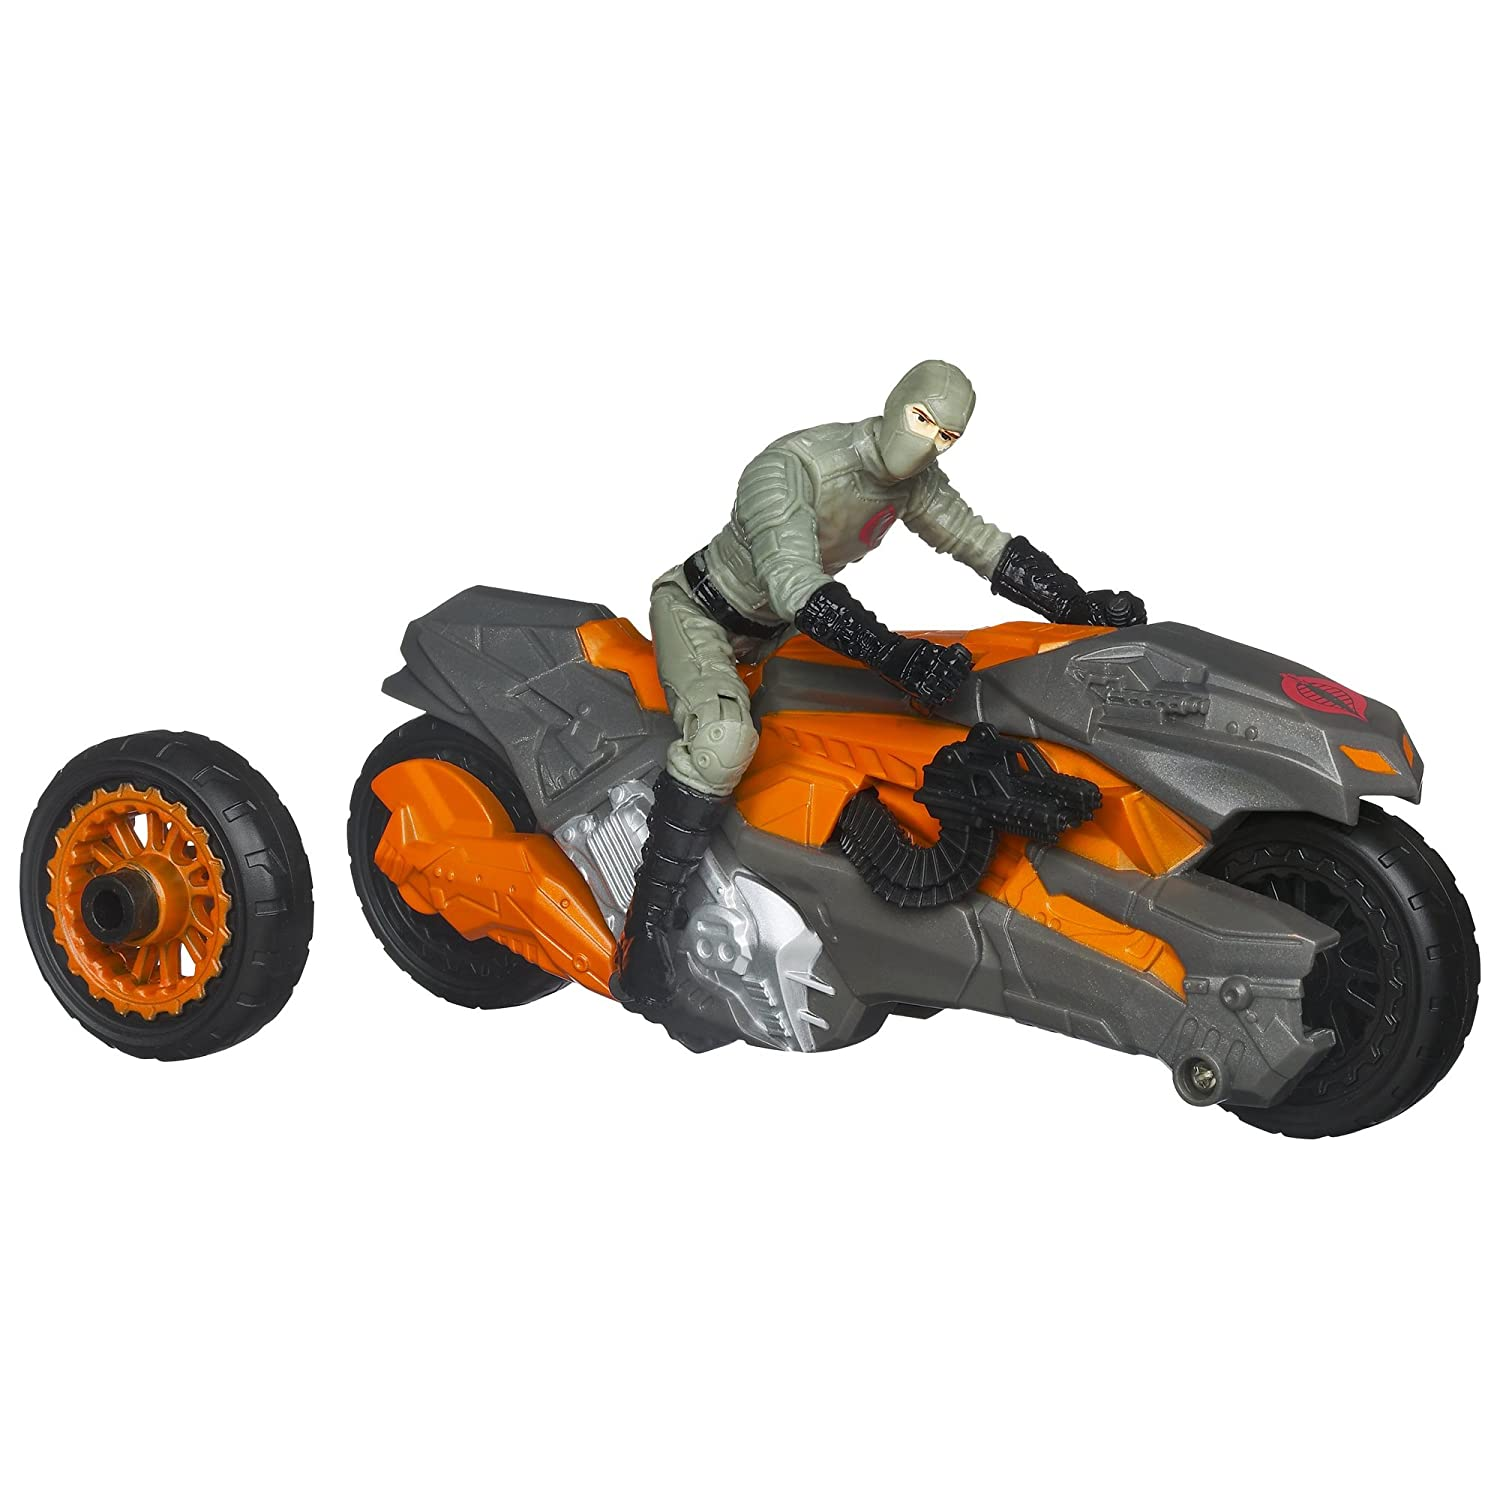 G.I. Joe retaliation Cobra Wheel Blaster Bike Vehicle with Firefly Figure